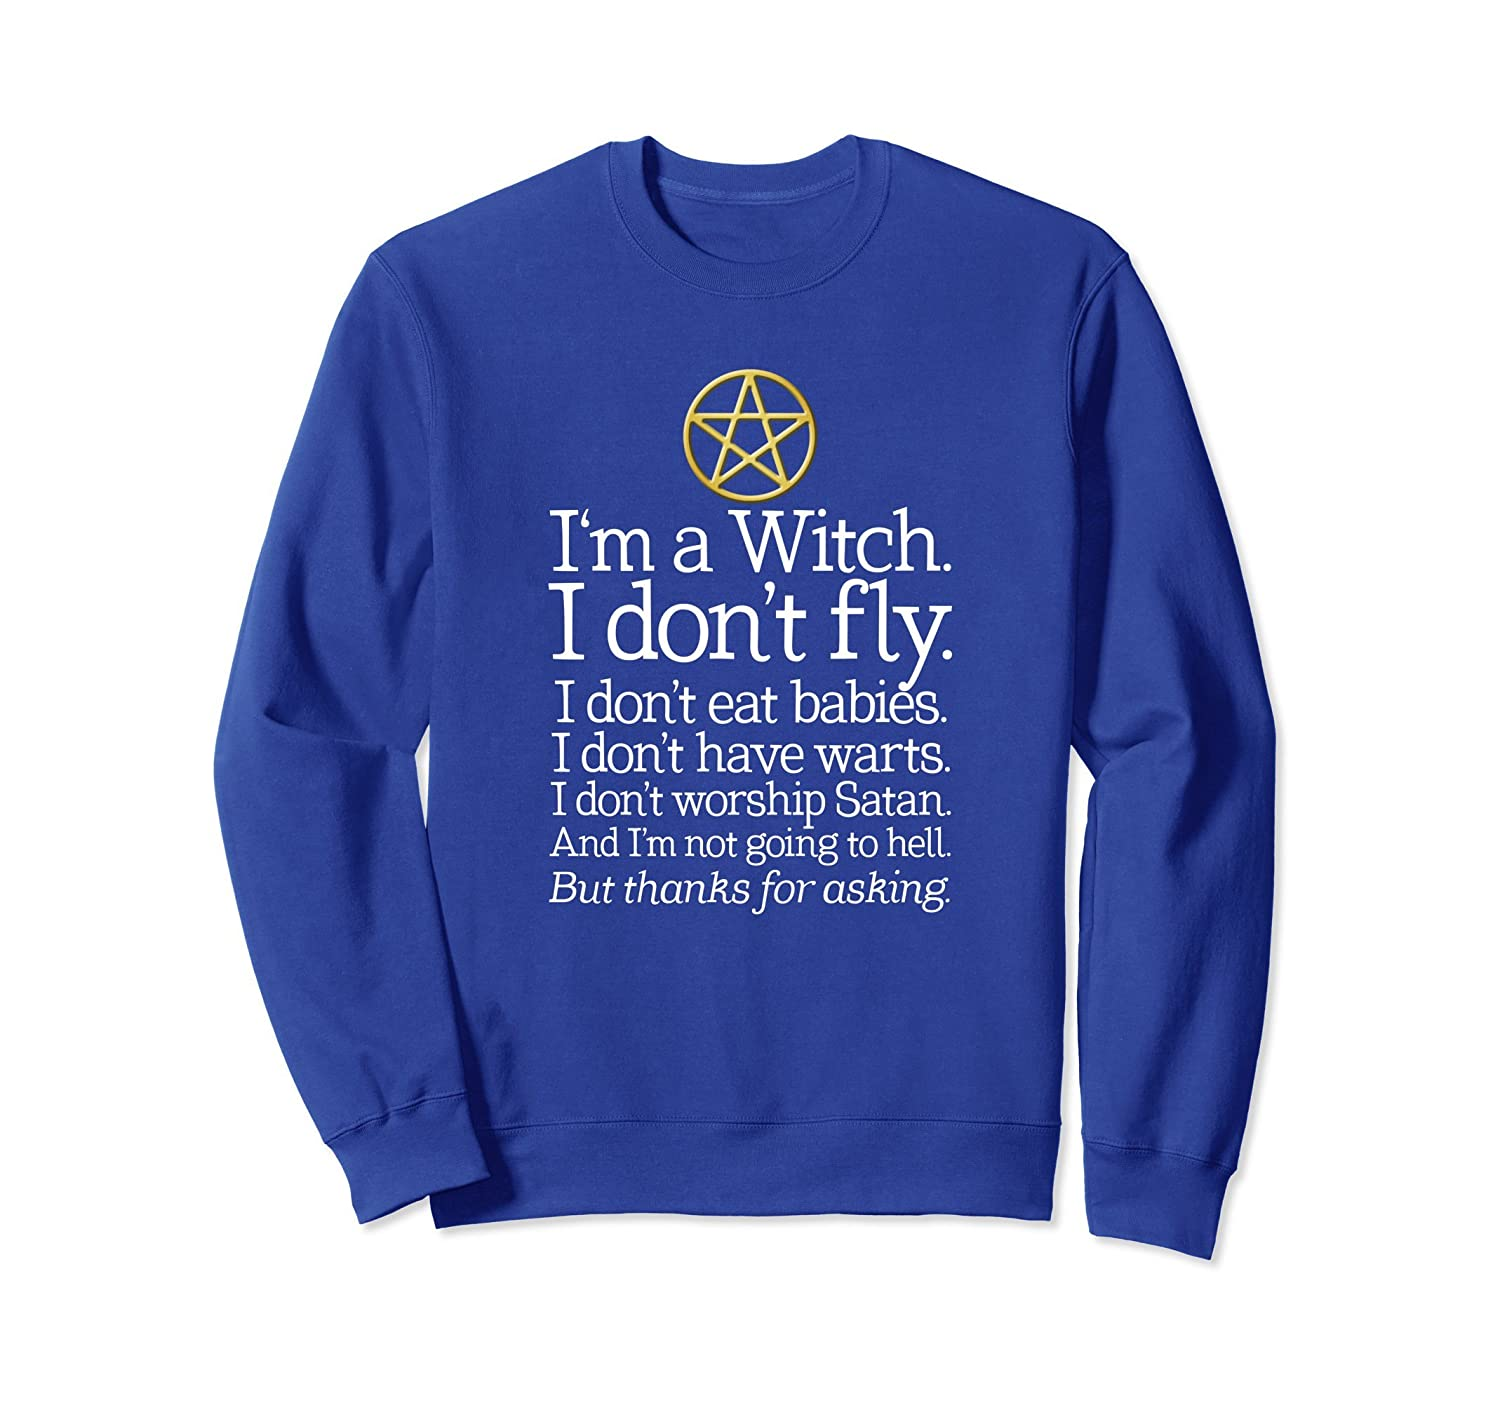 I'm A Witch I Don't Fly Sweatshirt Wicca Wiccan Pagan Gift-mt